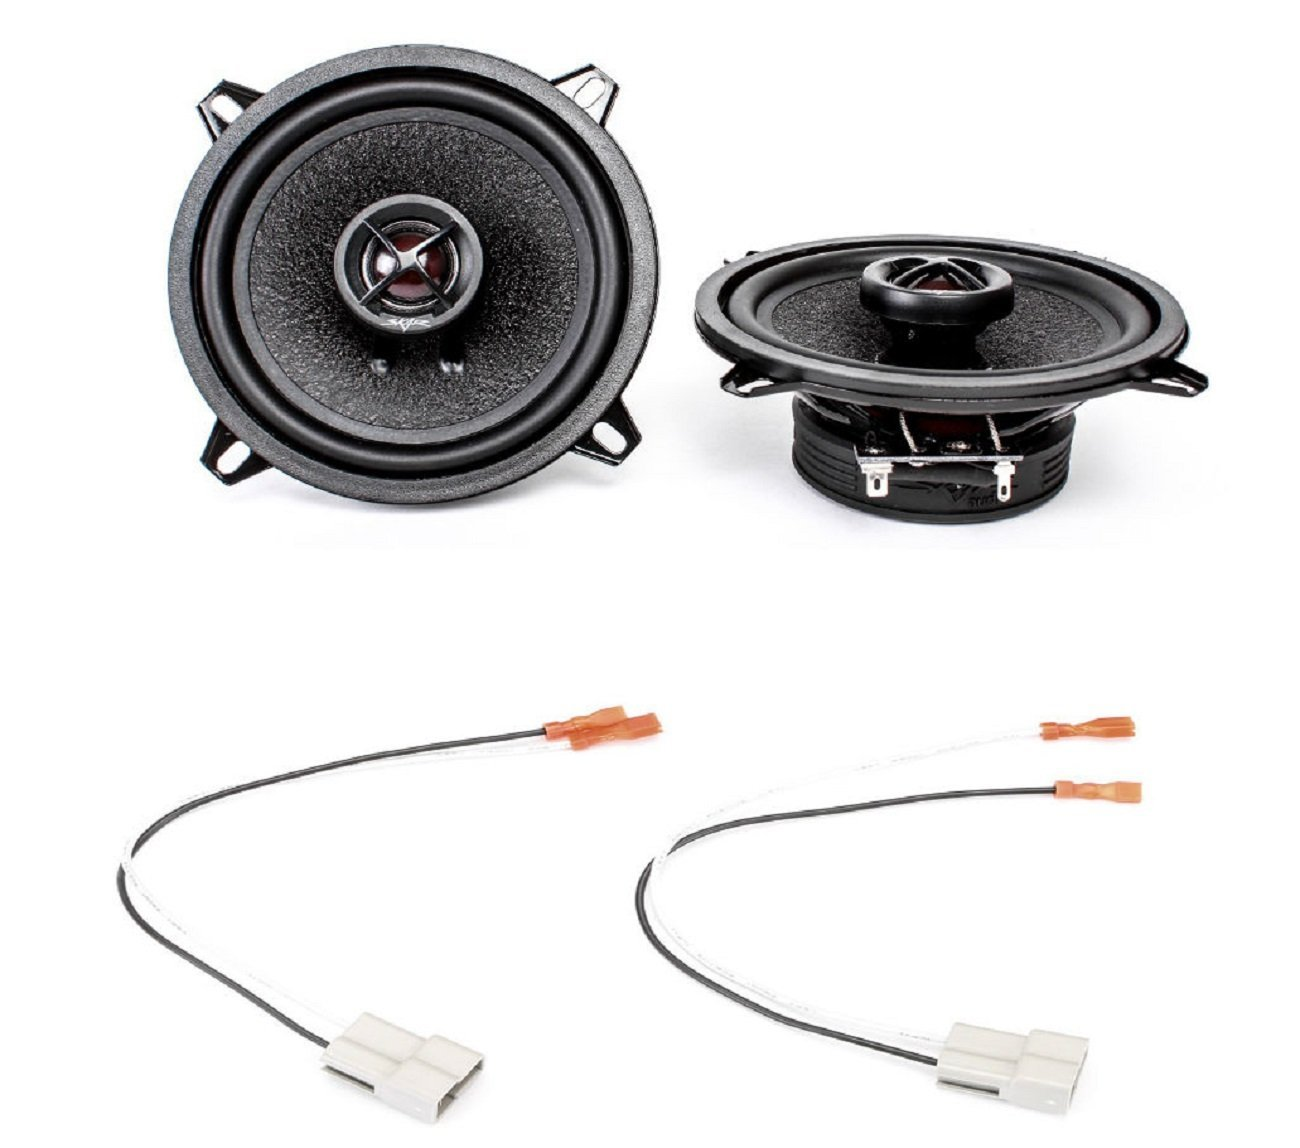 1994-1995 Dodge Shadow Front Door 5.25' 240 Watt Replacement Upgrade Speakers by Skar Audio